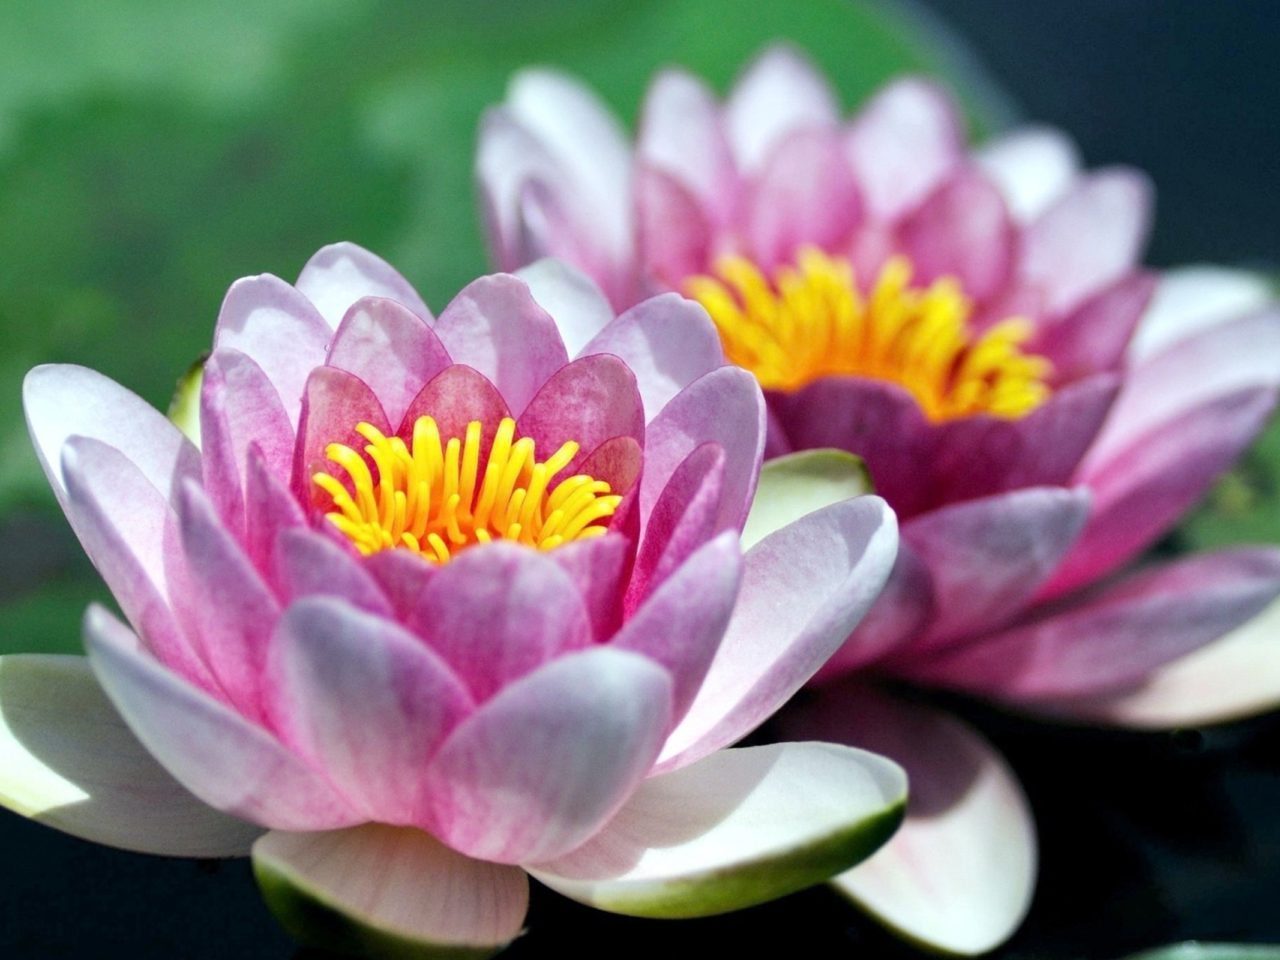 Iphone 5 Wallpaper Pink Water Lily Close Up Petals Flowers 2560x1600